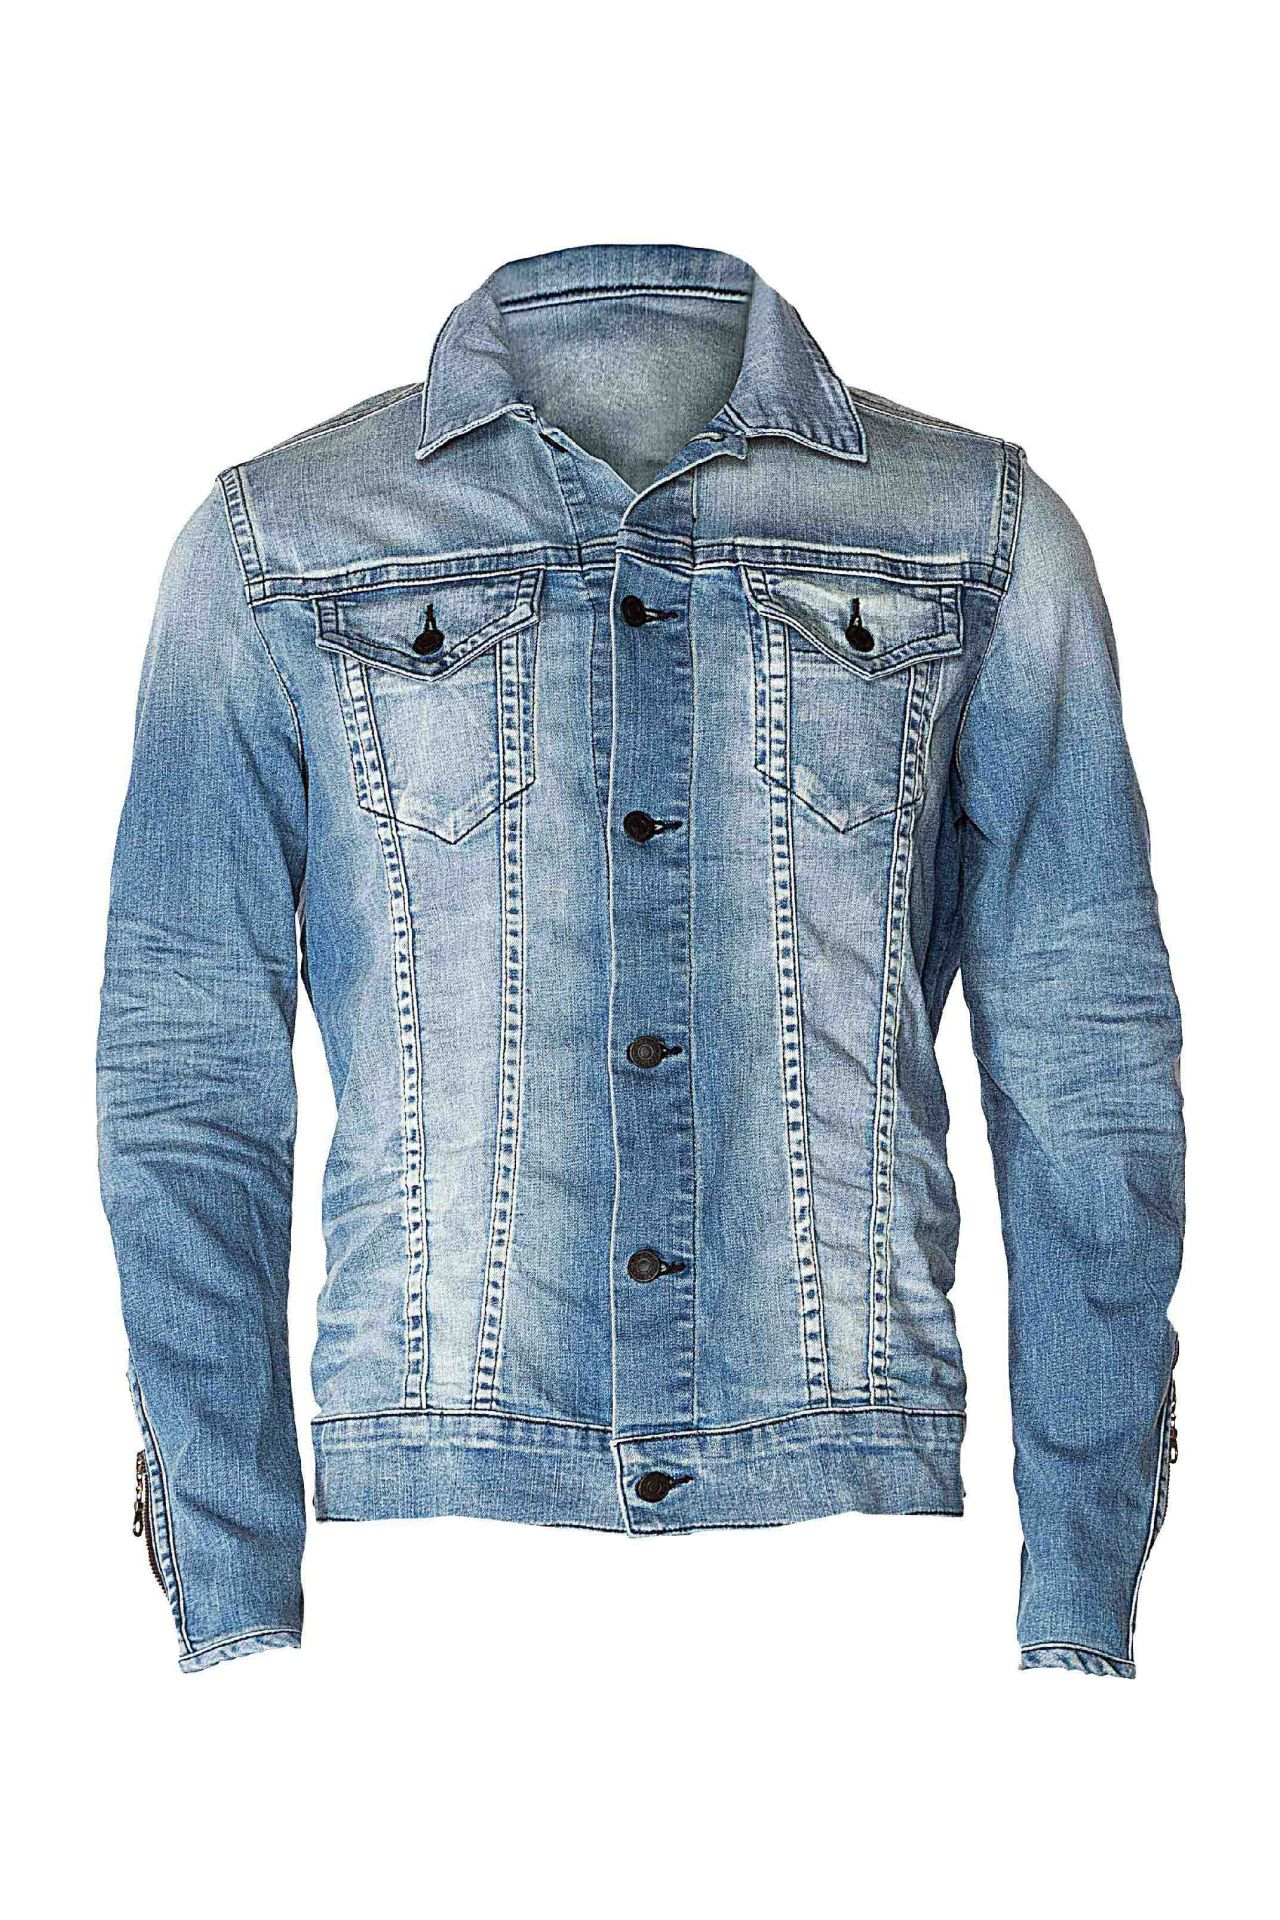 STUDDED CROSS DENIM JACKET IN BLUE AND WHITE